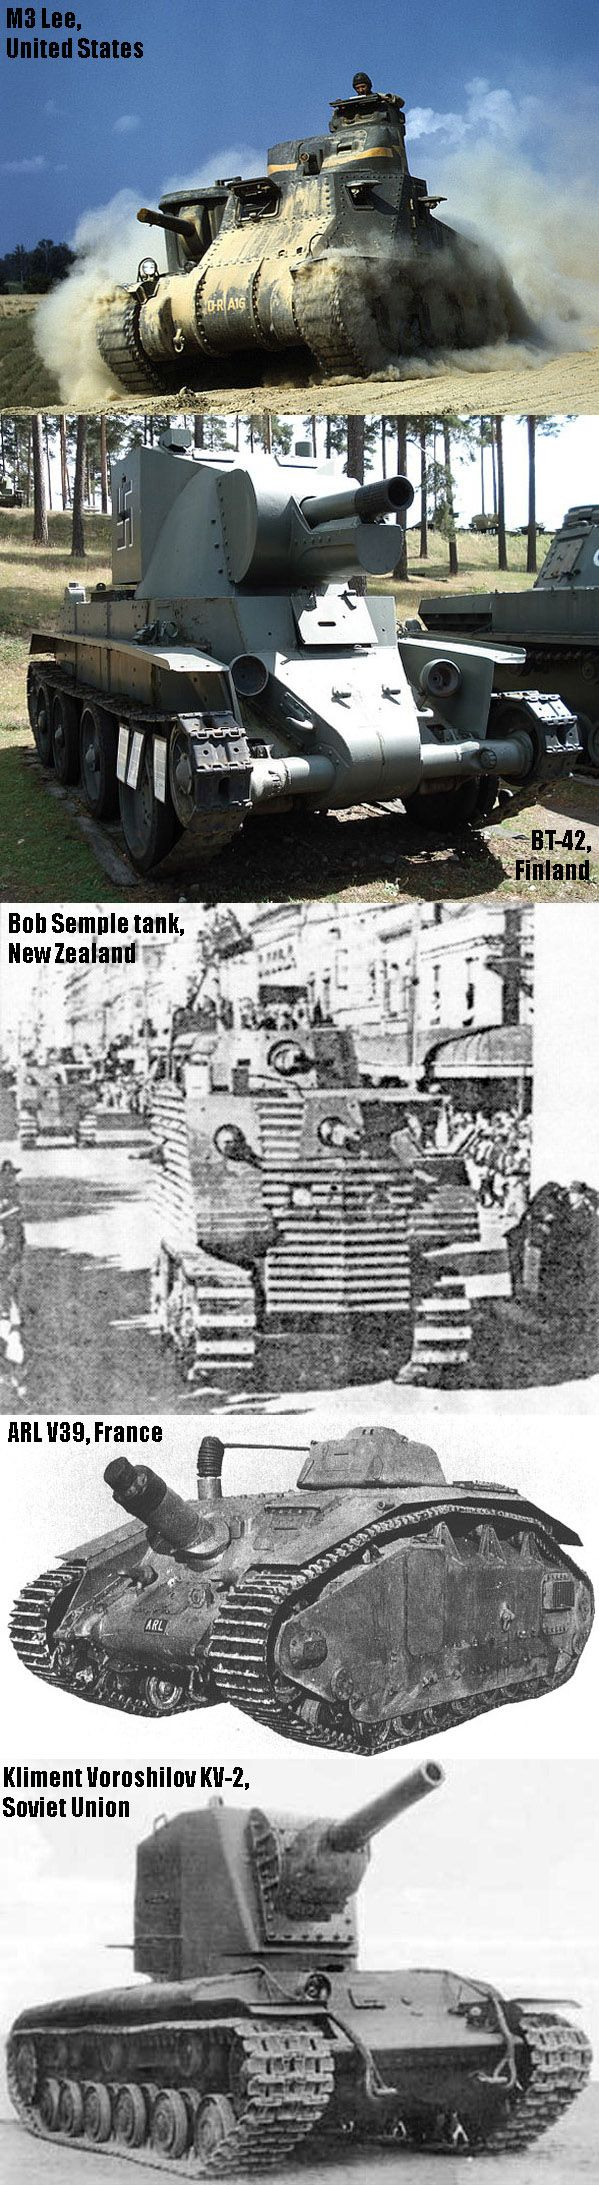 The Ugliest Tanks Of World War II - Military humor